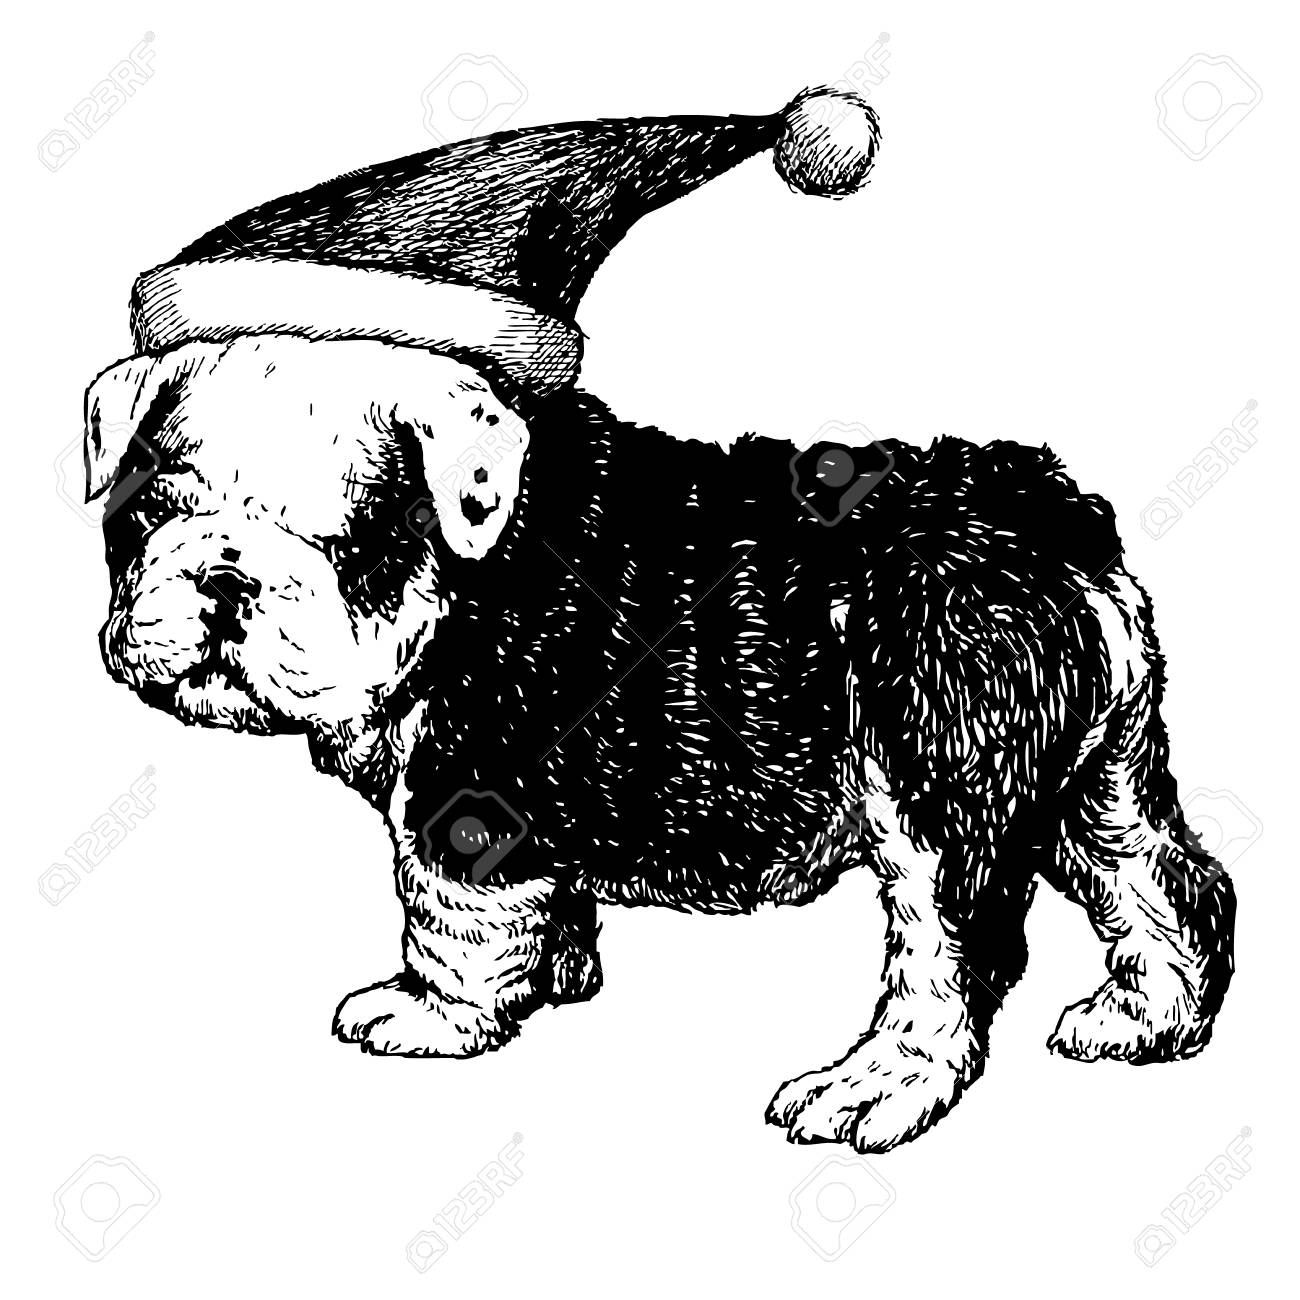 1300x1300 Freehand Sketch Illustration Of Bulldog Dog With Christmas Santa